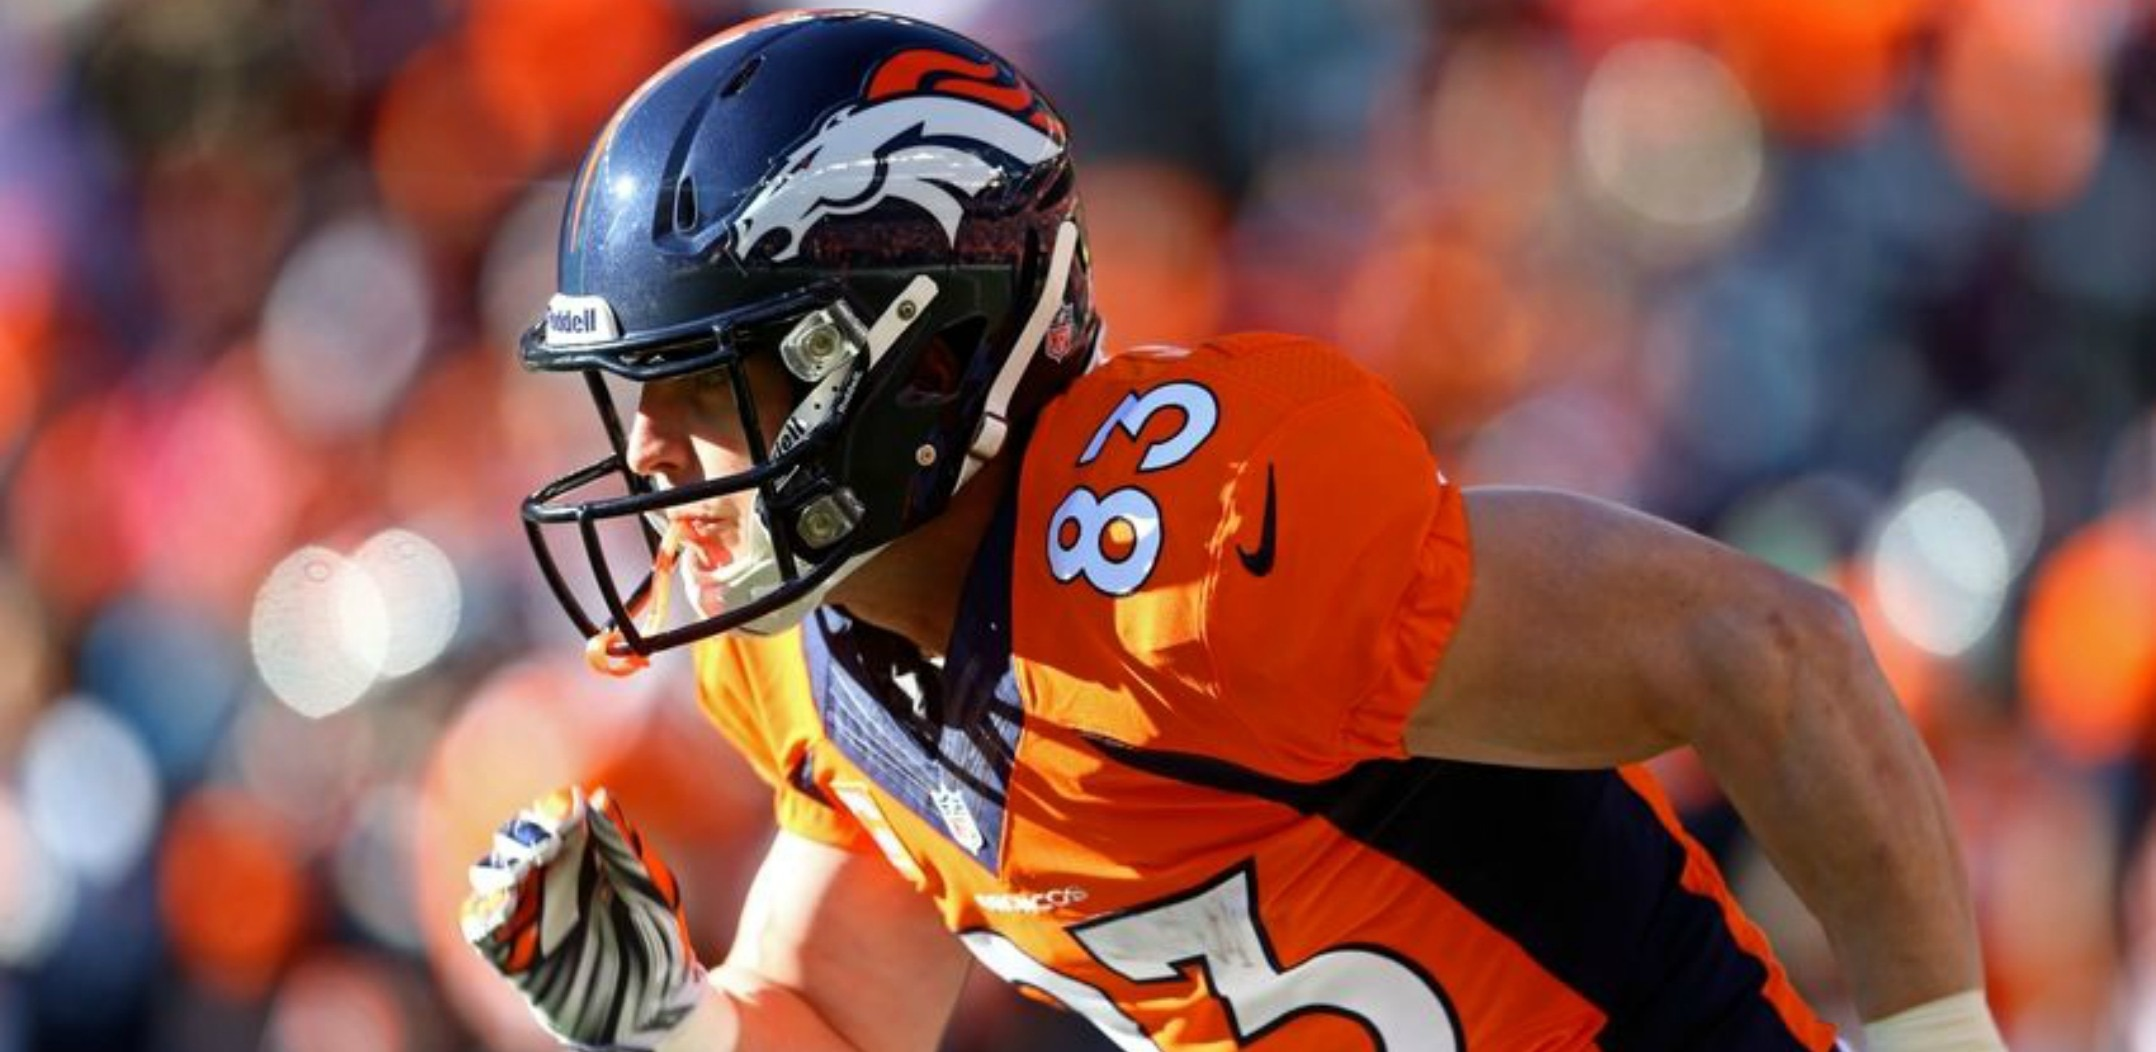 Broncos Wes Welker And His Wife Confused Over His Concussions